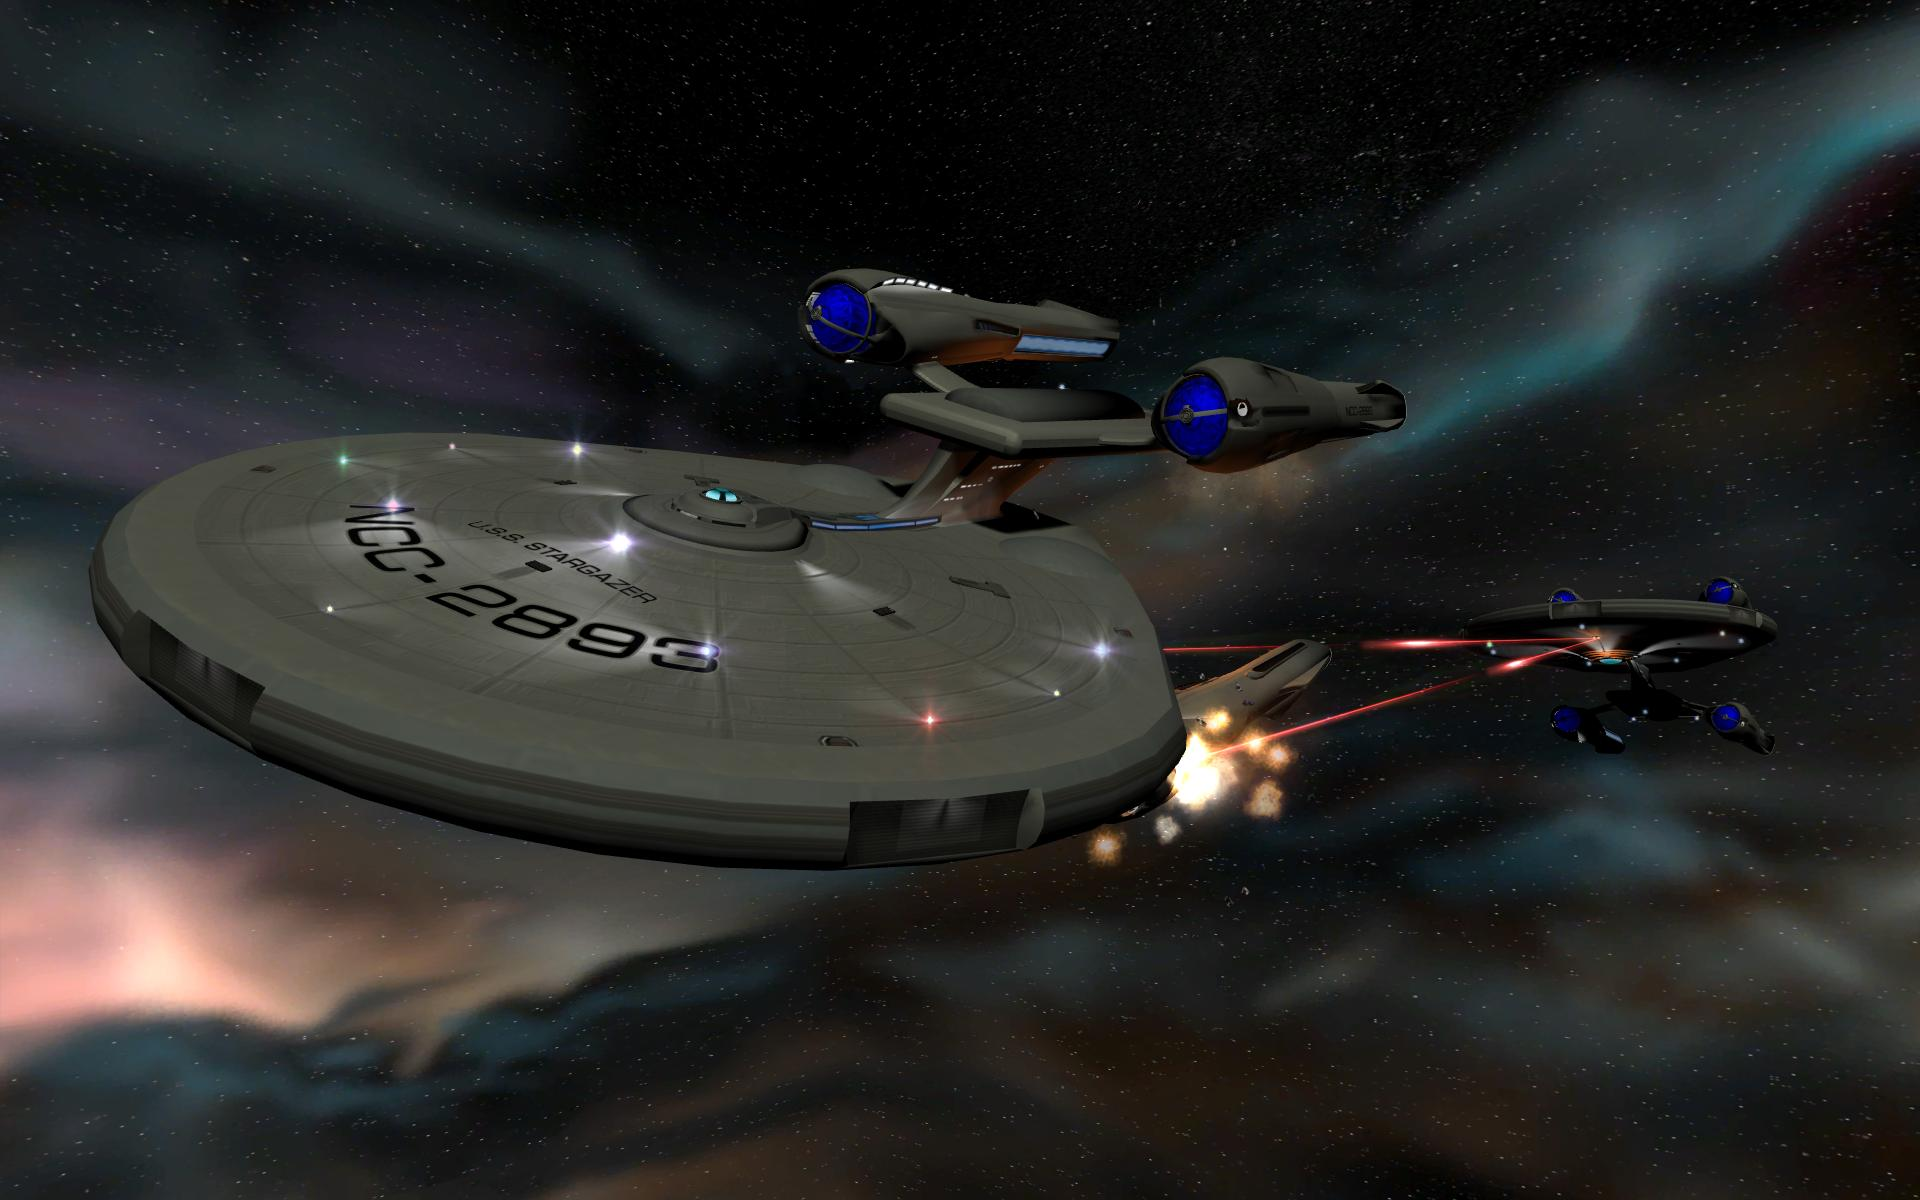 Star trek strategy games for pc.